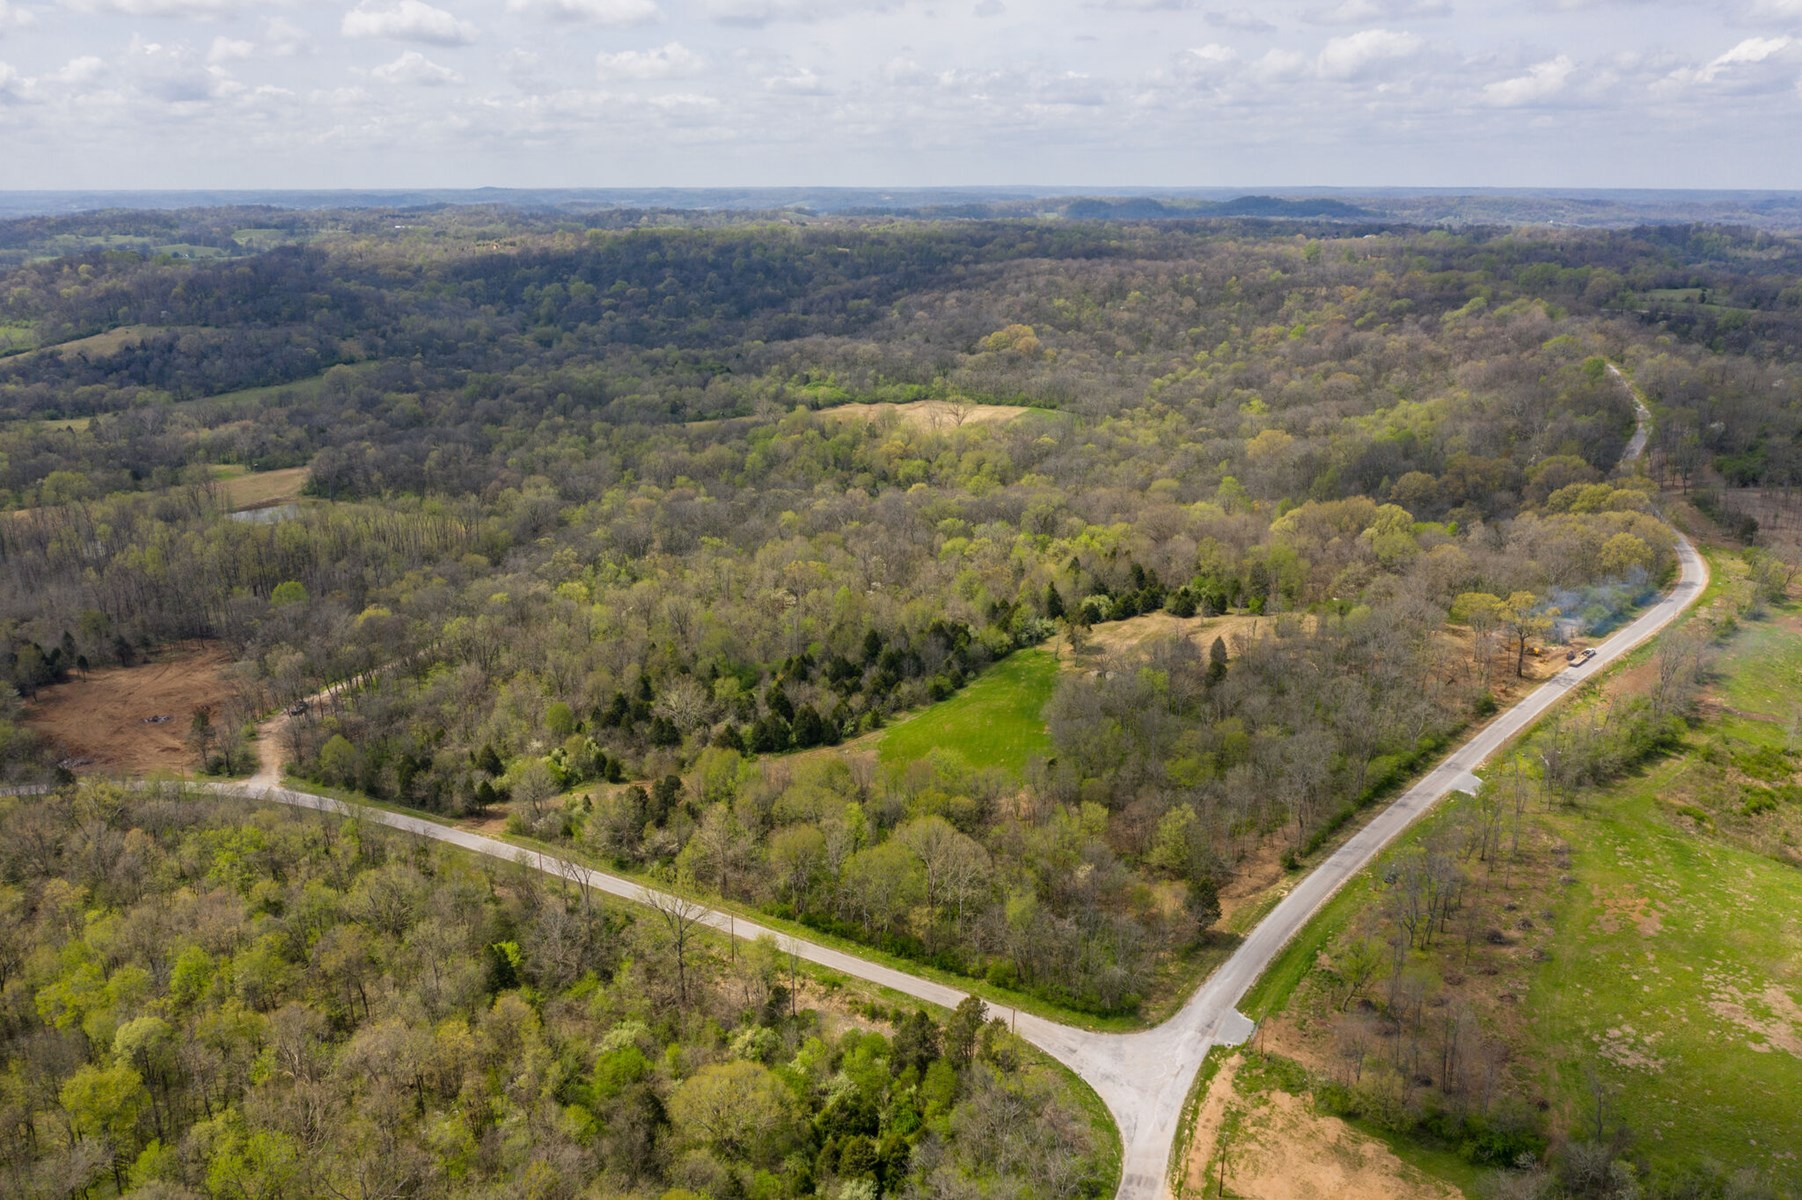 Acreage for Sale with Food Plots in Columbia, Tennessee